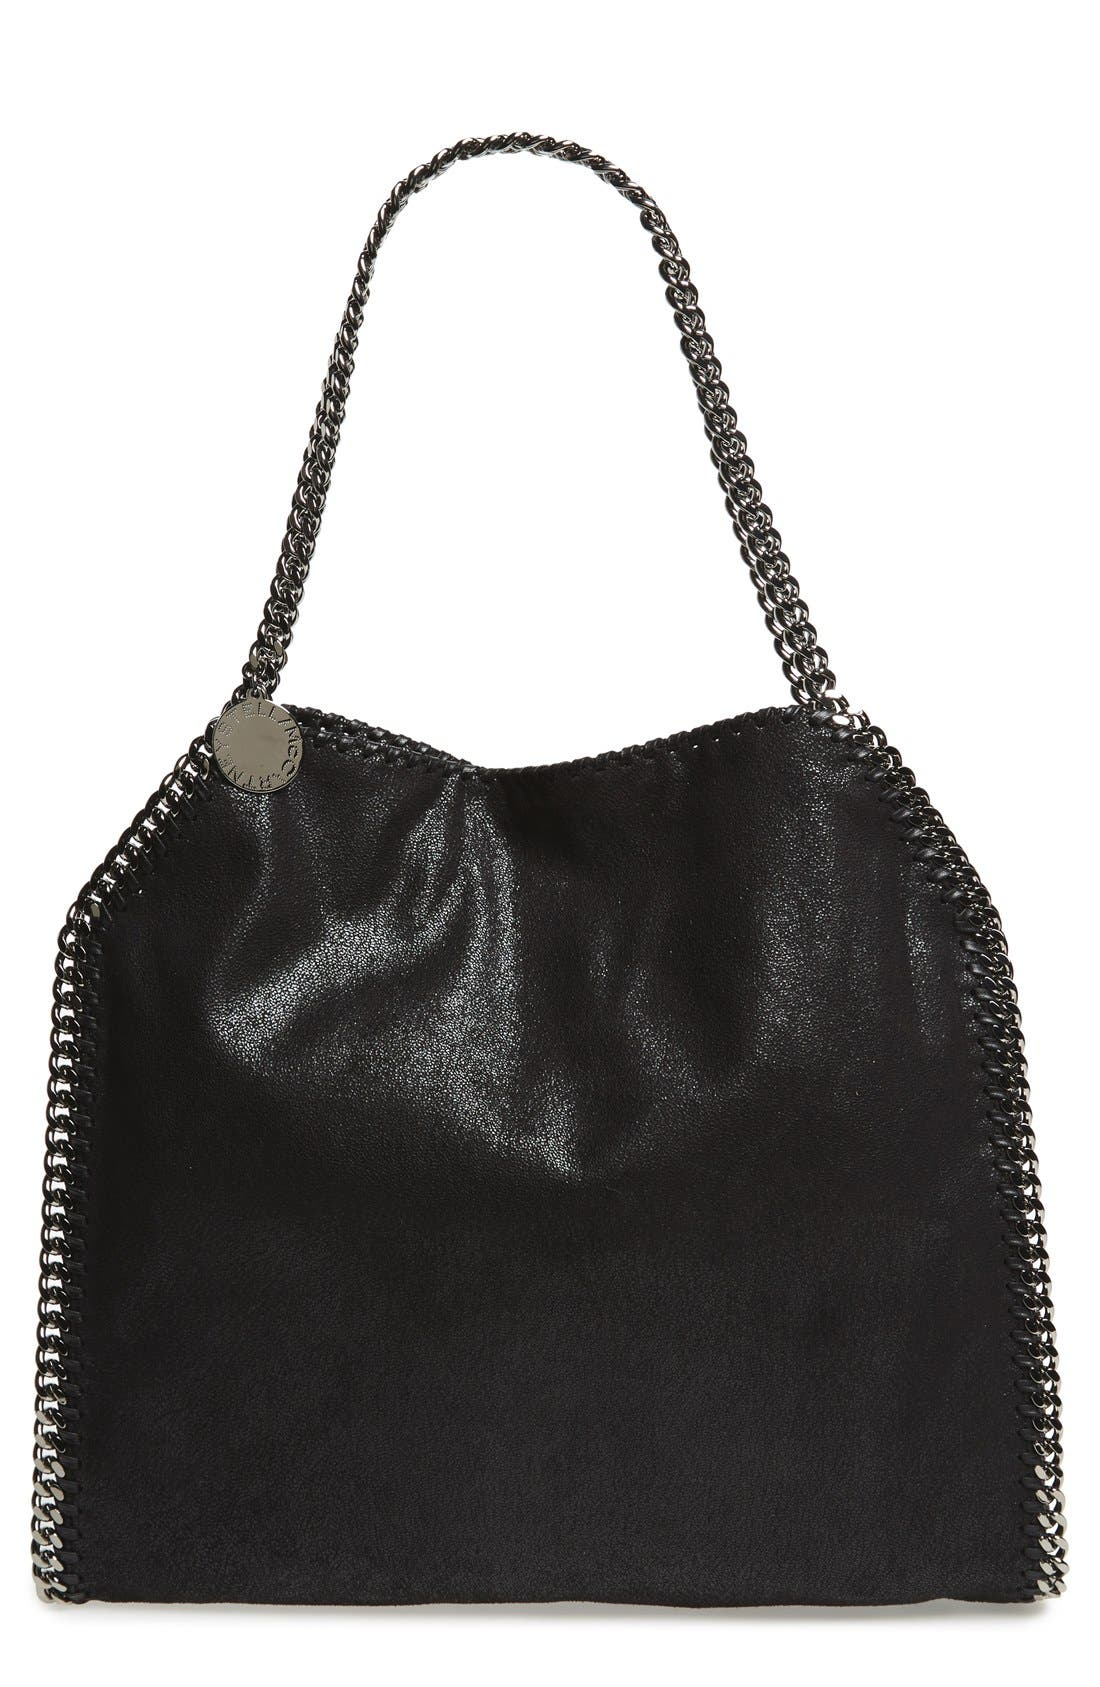 Stella McCartney 'Small Falabella - Shaggy Deer' Faux Leather Tote   Nordstrom